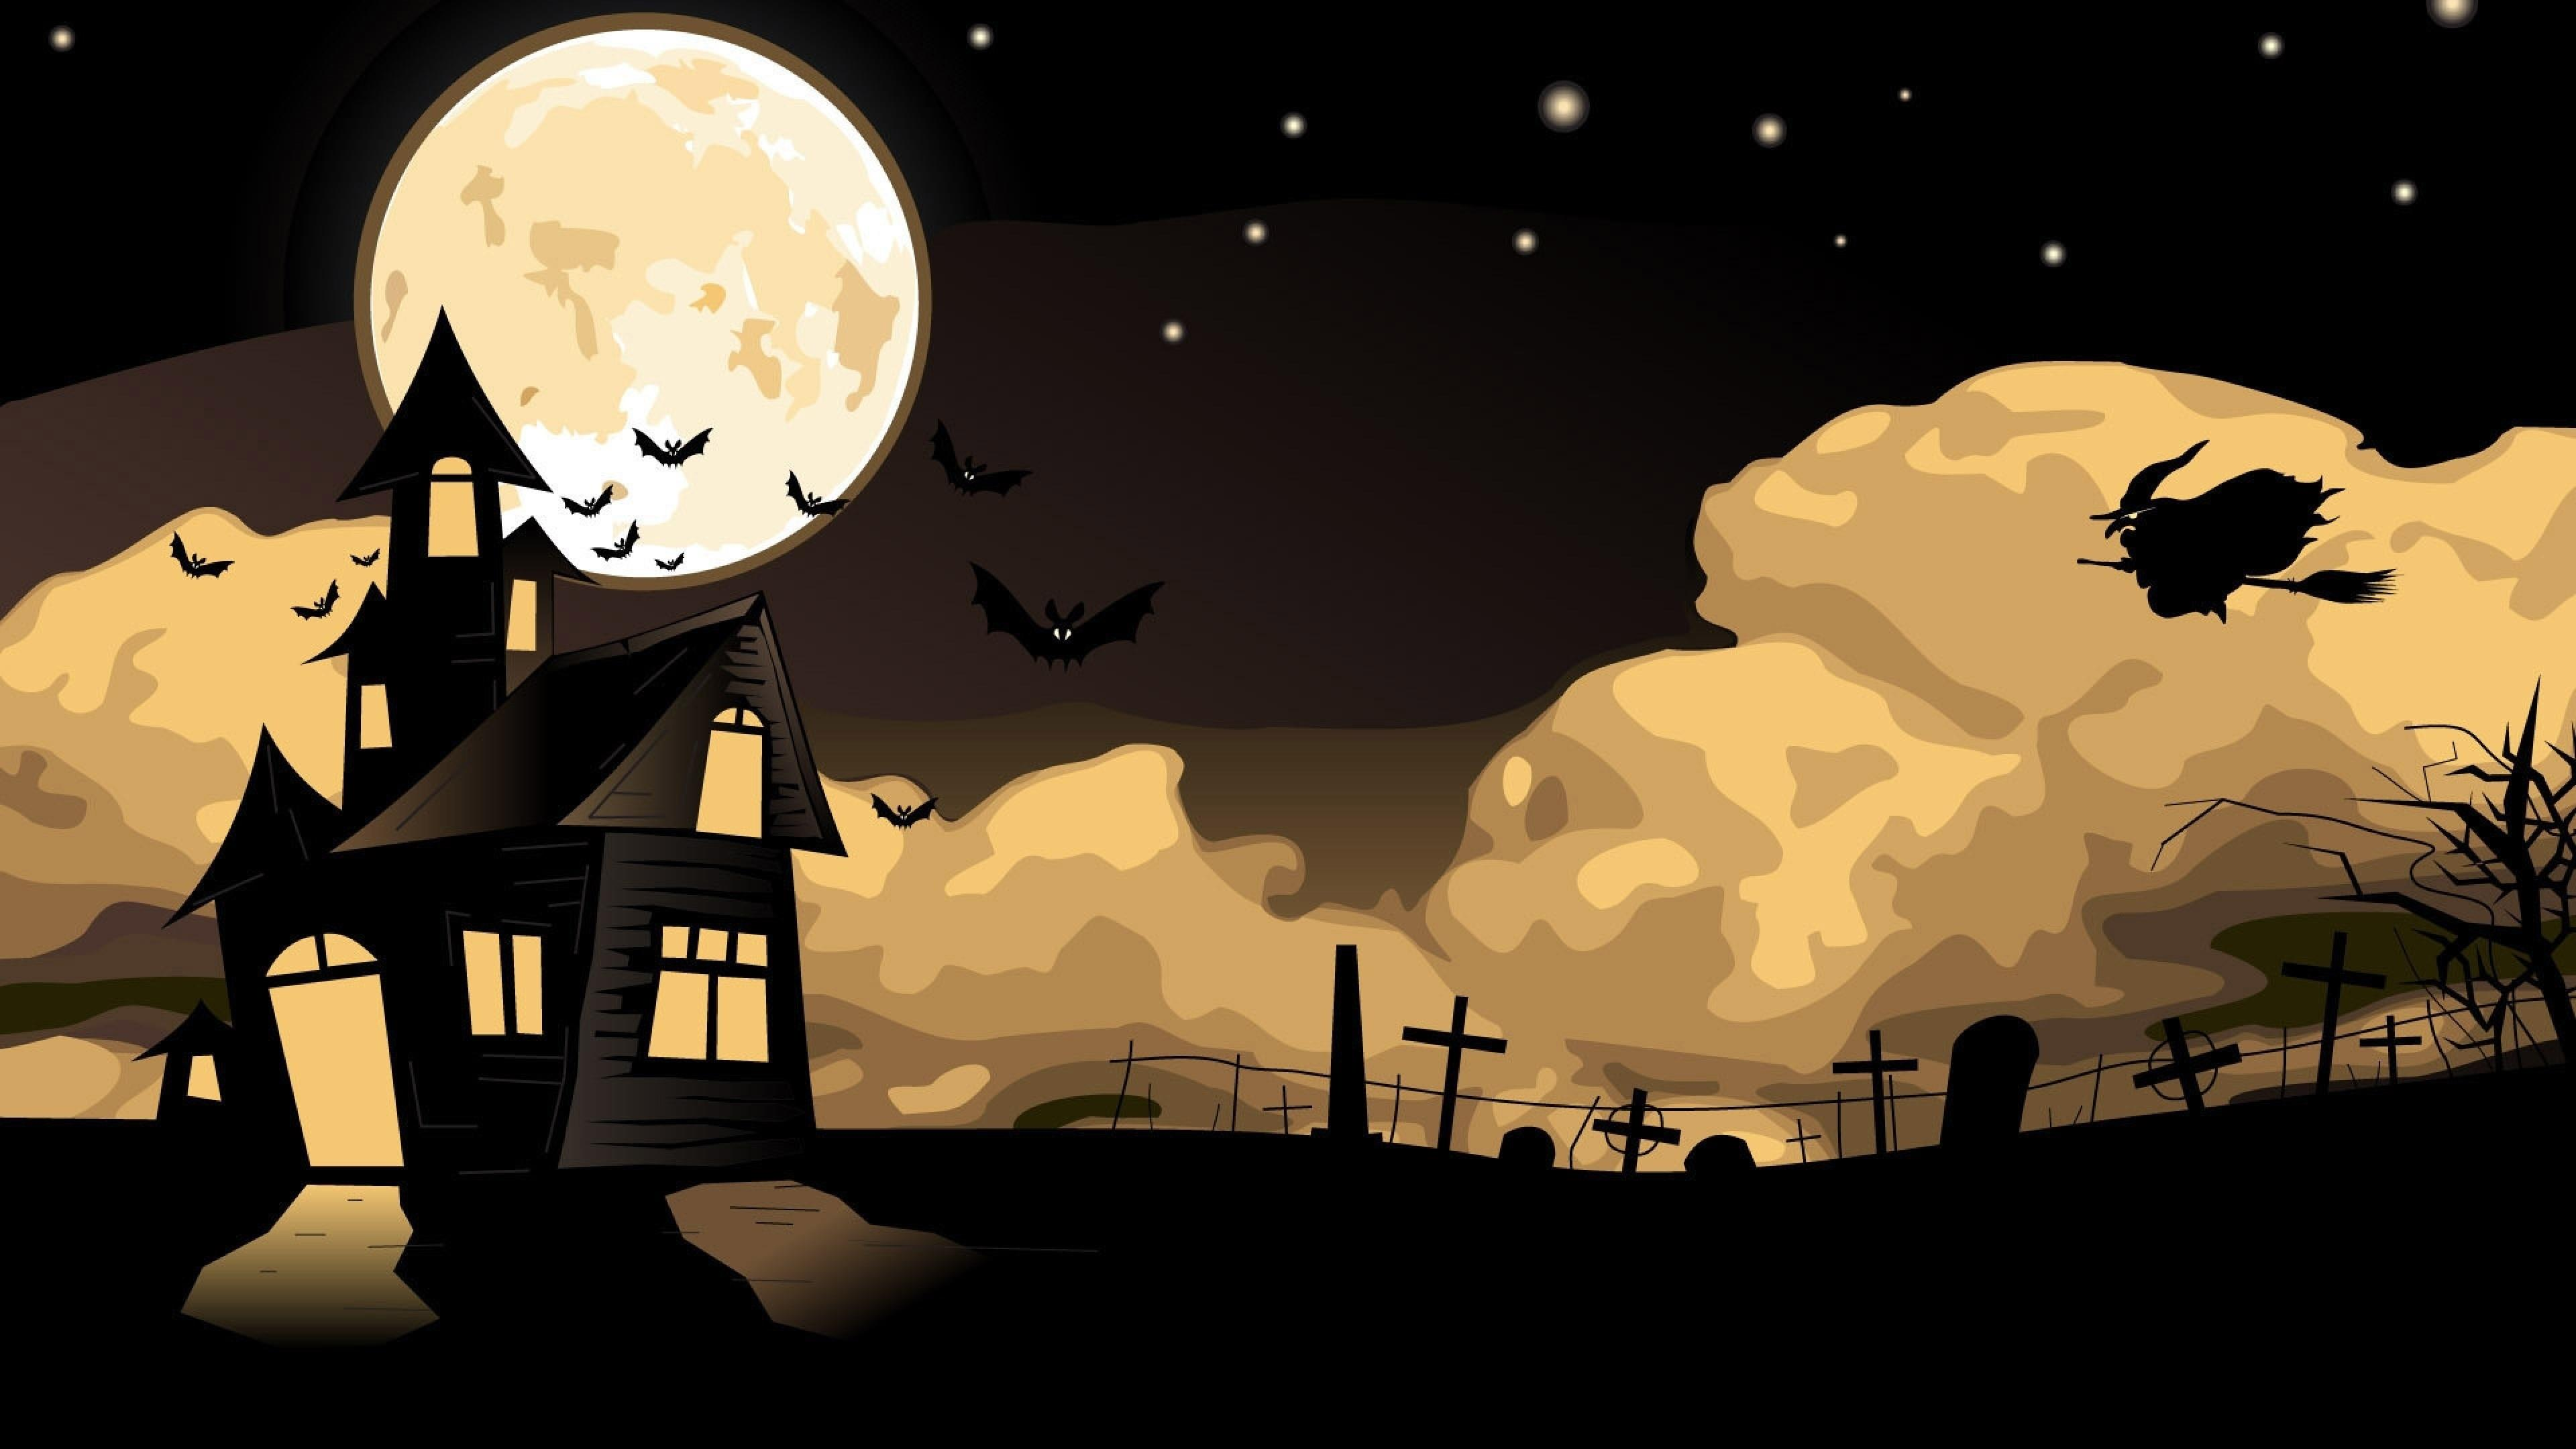 Flying witch and bats - Halloween illustration wallpaper